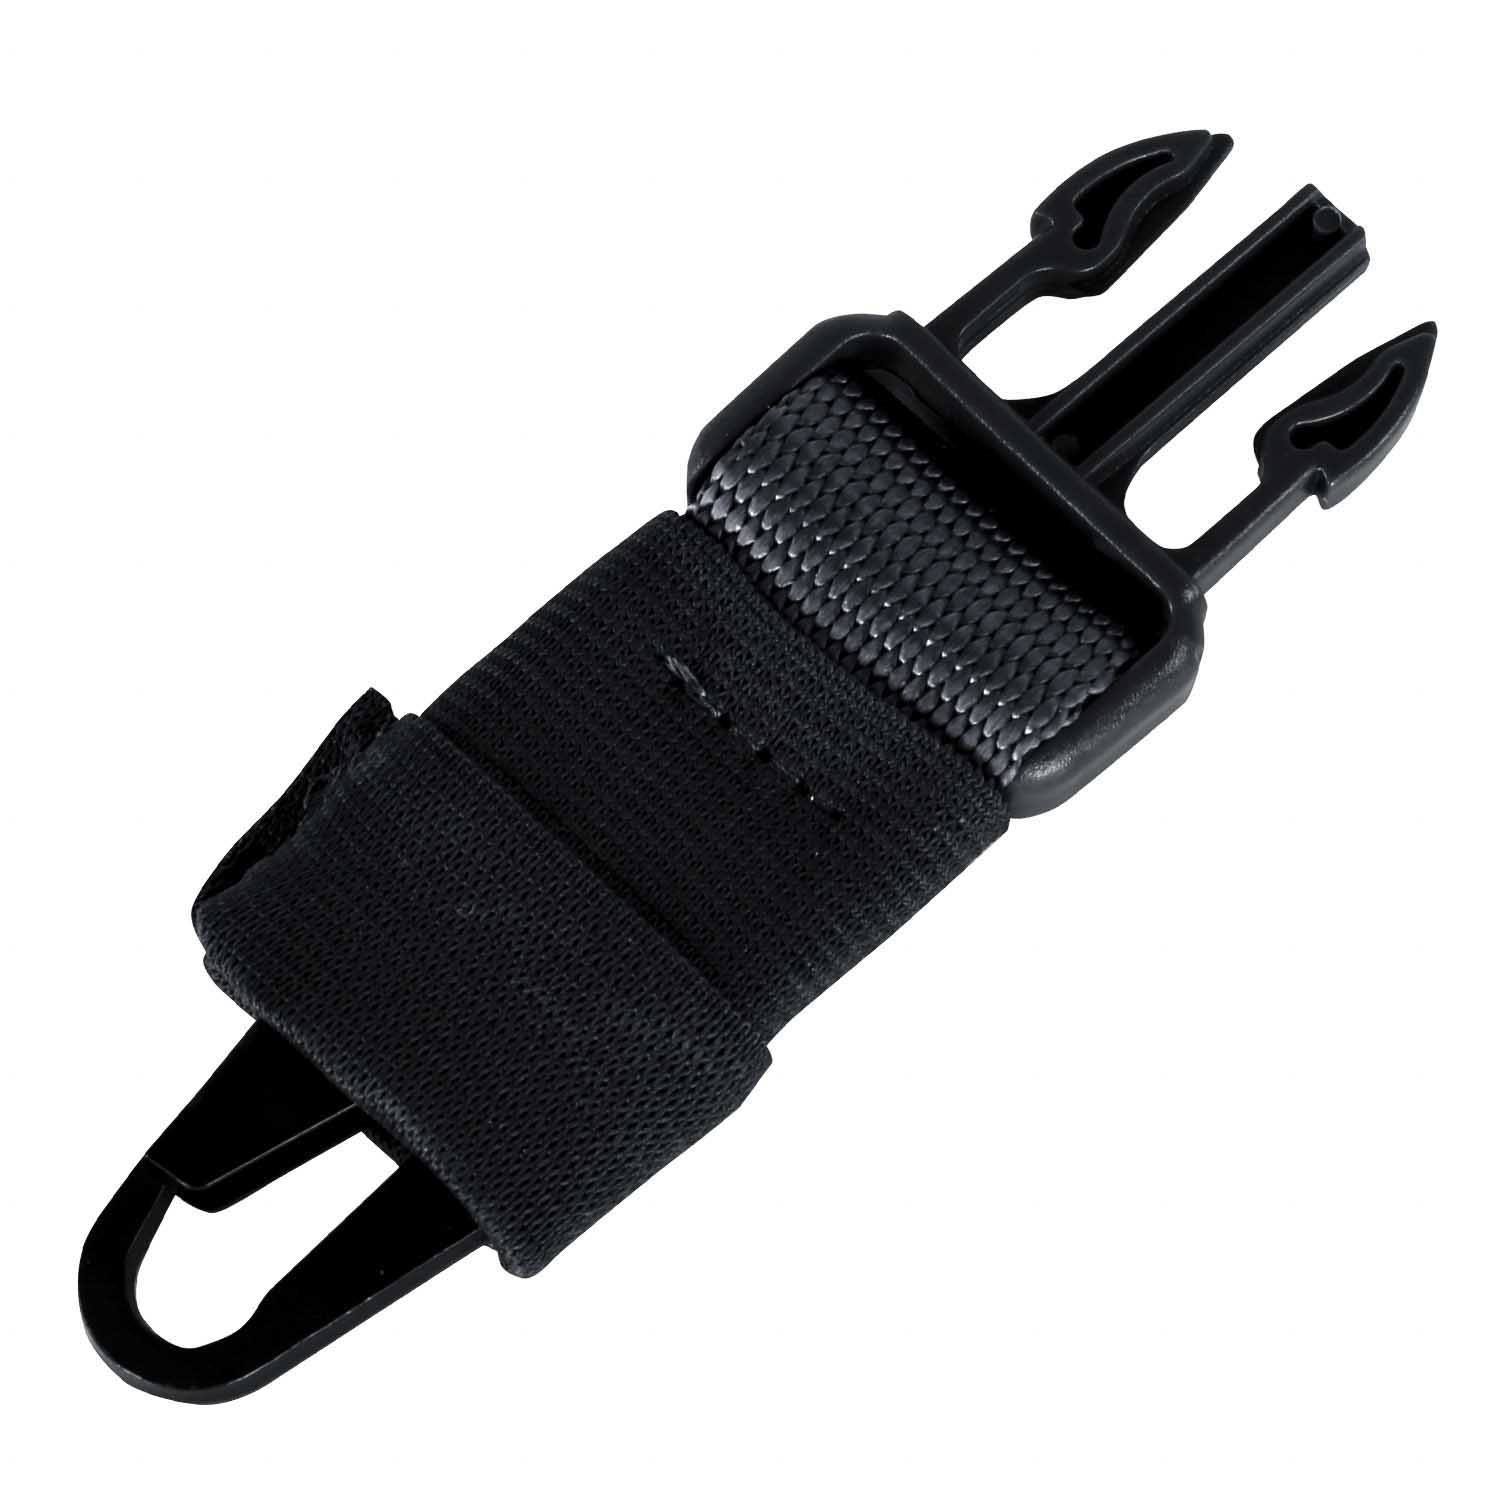 COBRA Single Point Bungee Sling